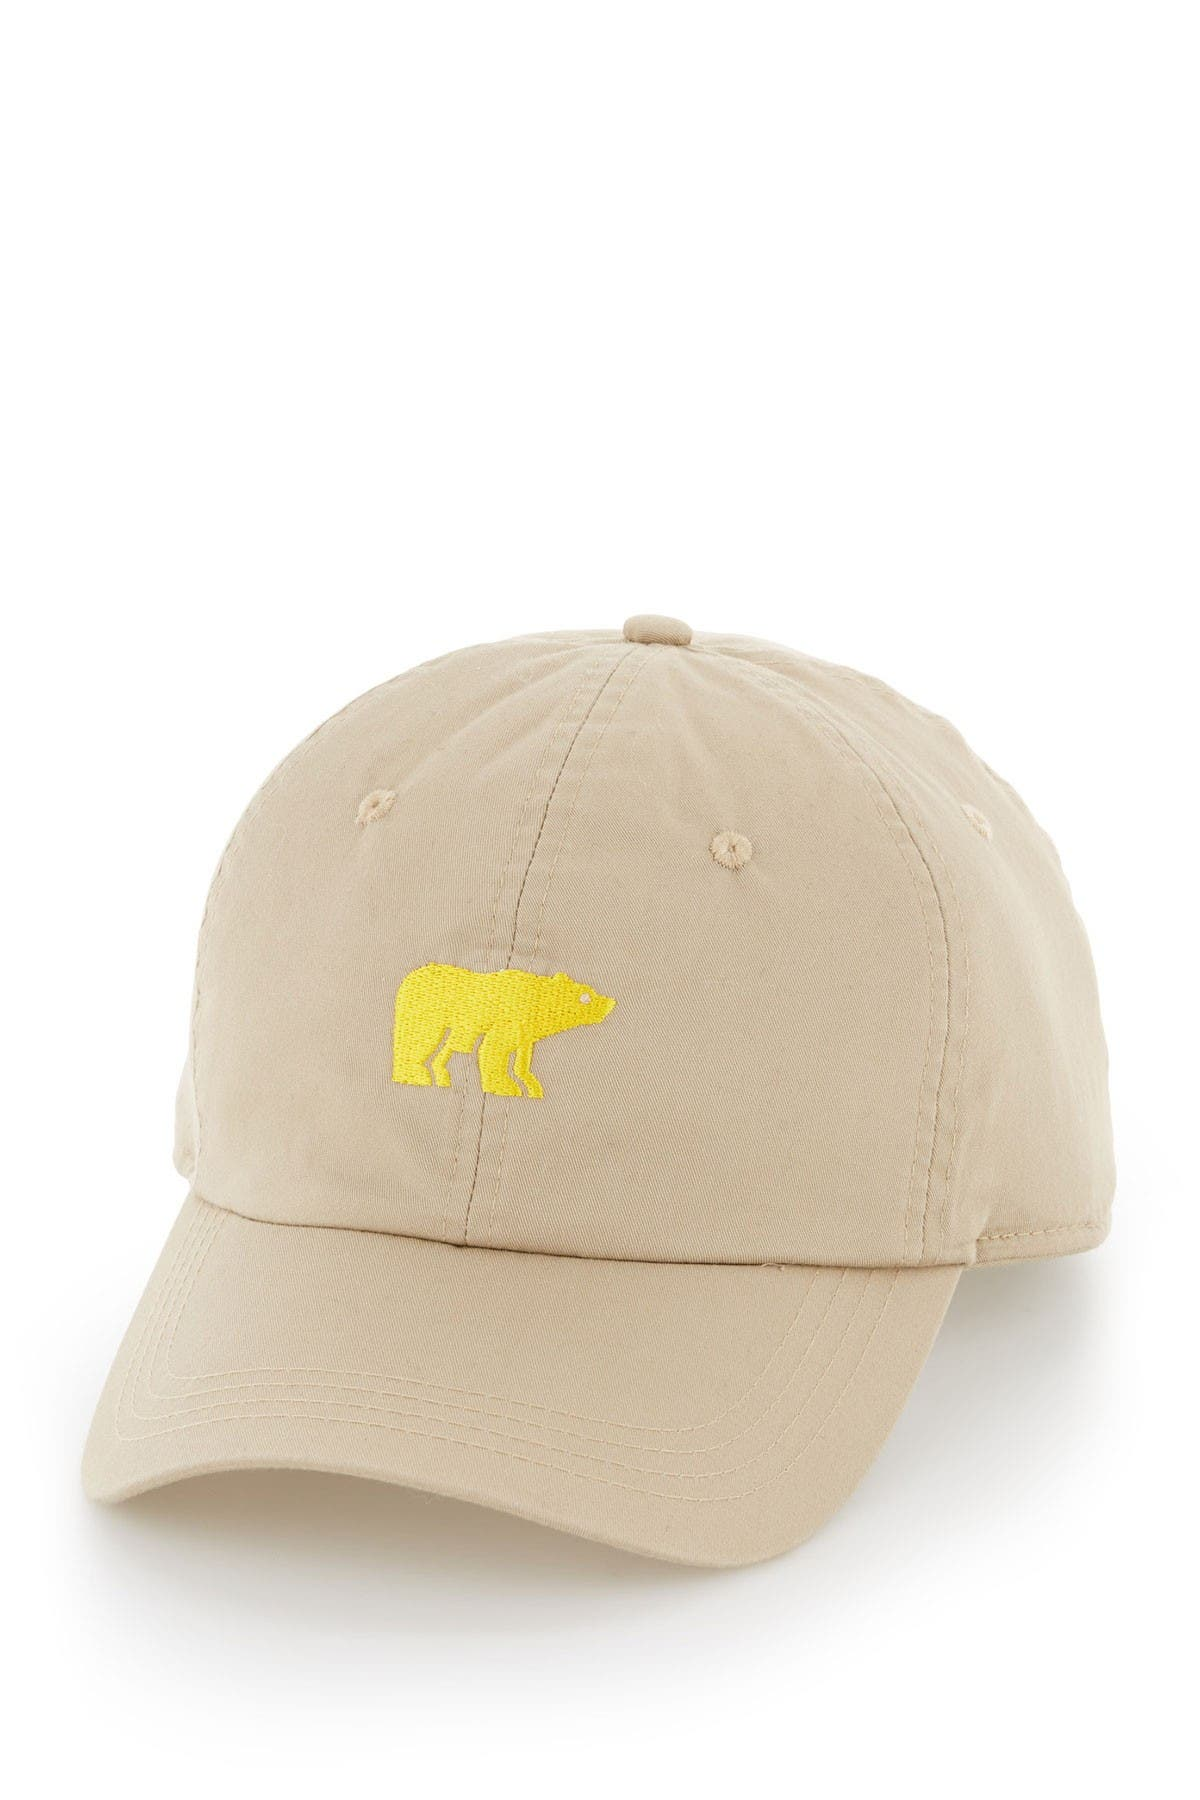 Image of Jack Nicklaus Logo Golf Cap